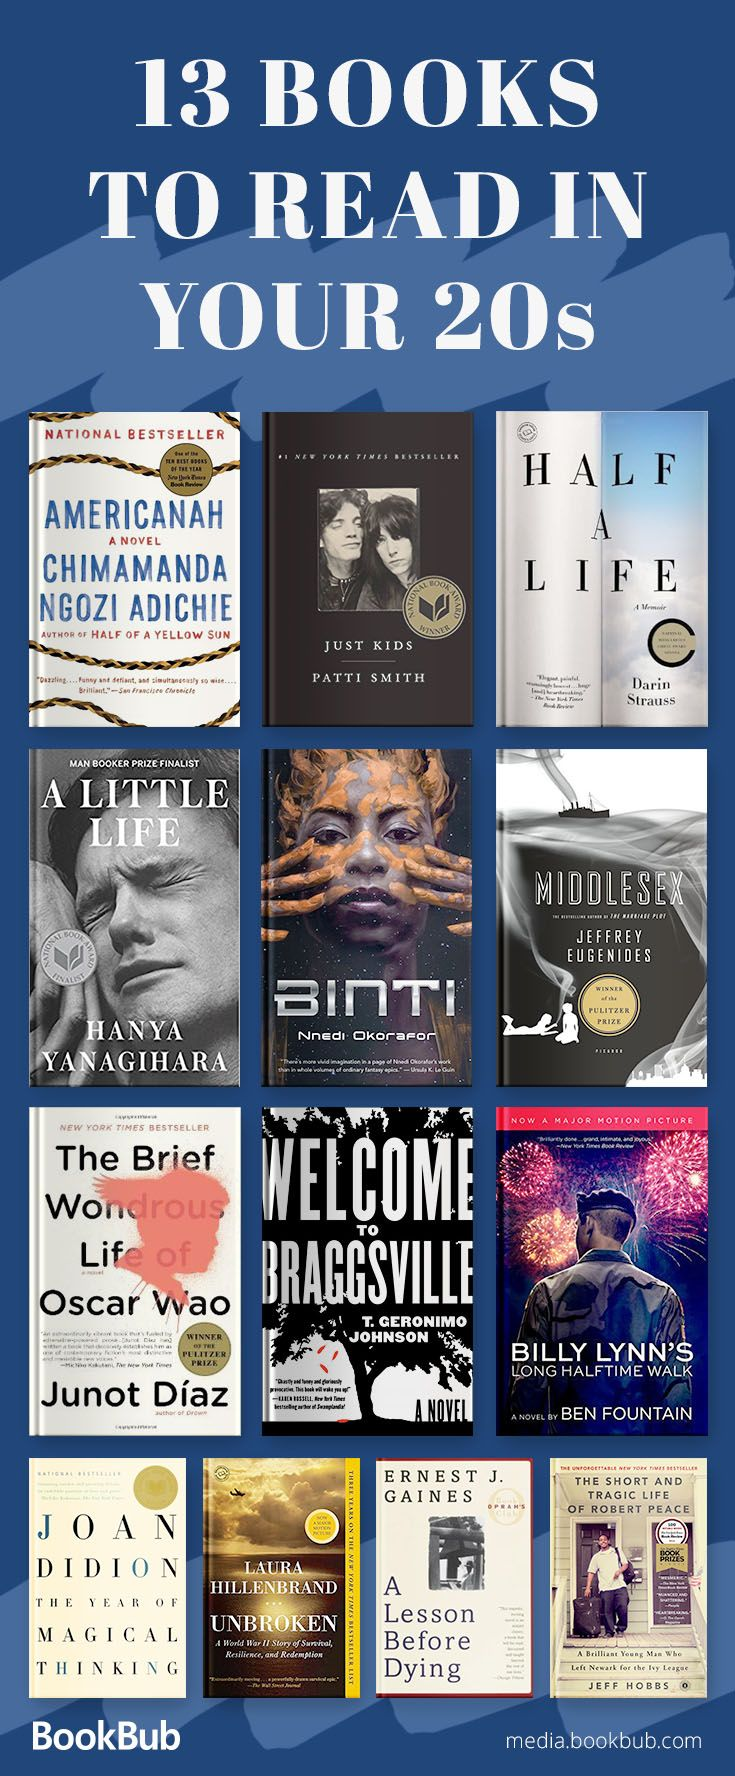 13 AwardWinning Books to Read in Your 20s is part of Books to read in your 20s, Famous books to read, Inspirational books to read, Books to read, Books, Best books for men - Including a mix of fiction and memoirs that capture valuable life lessons